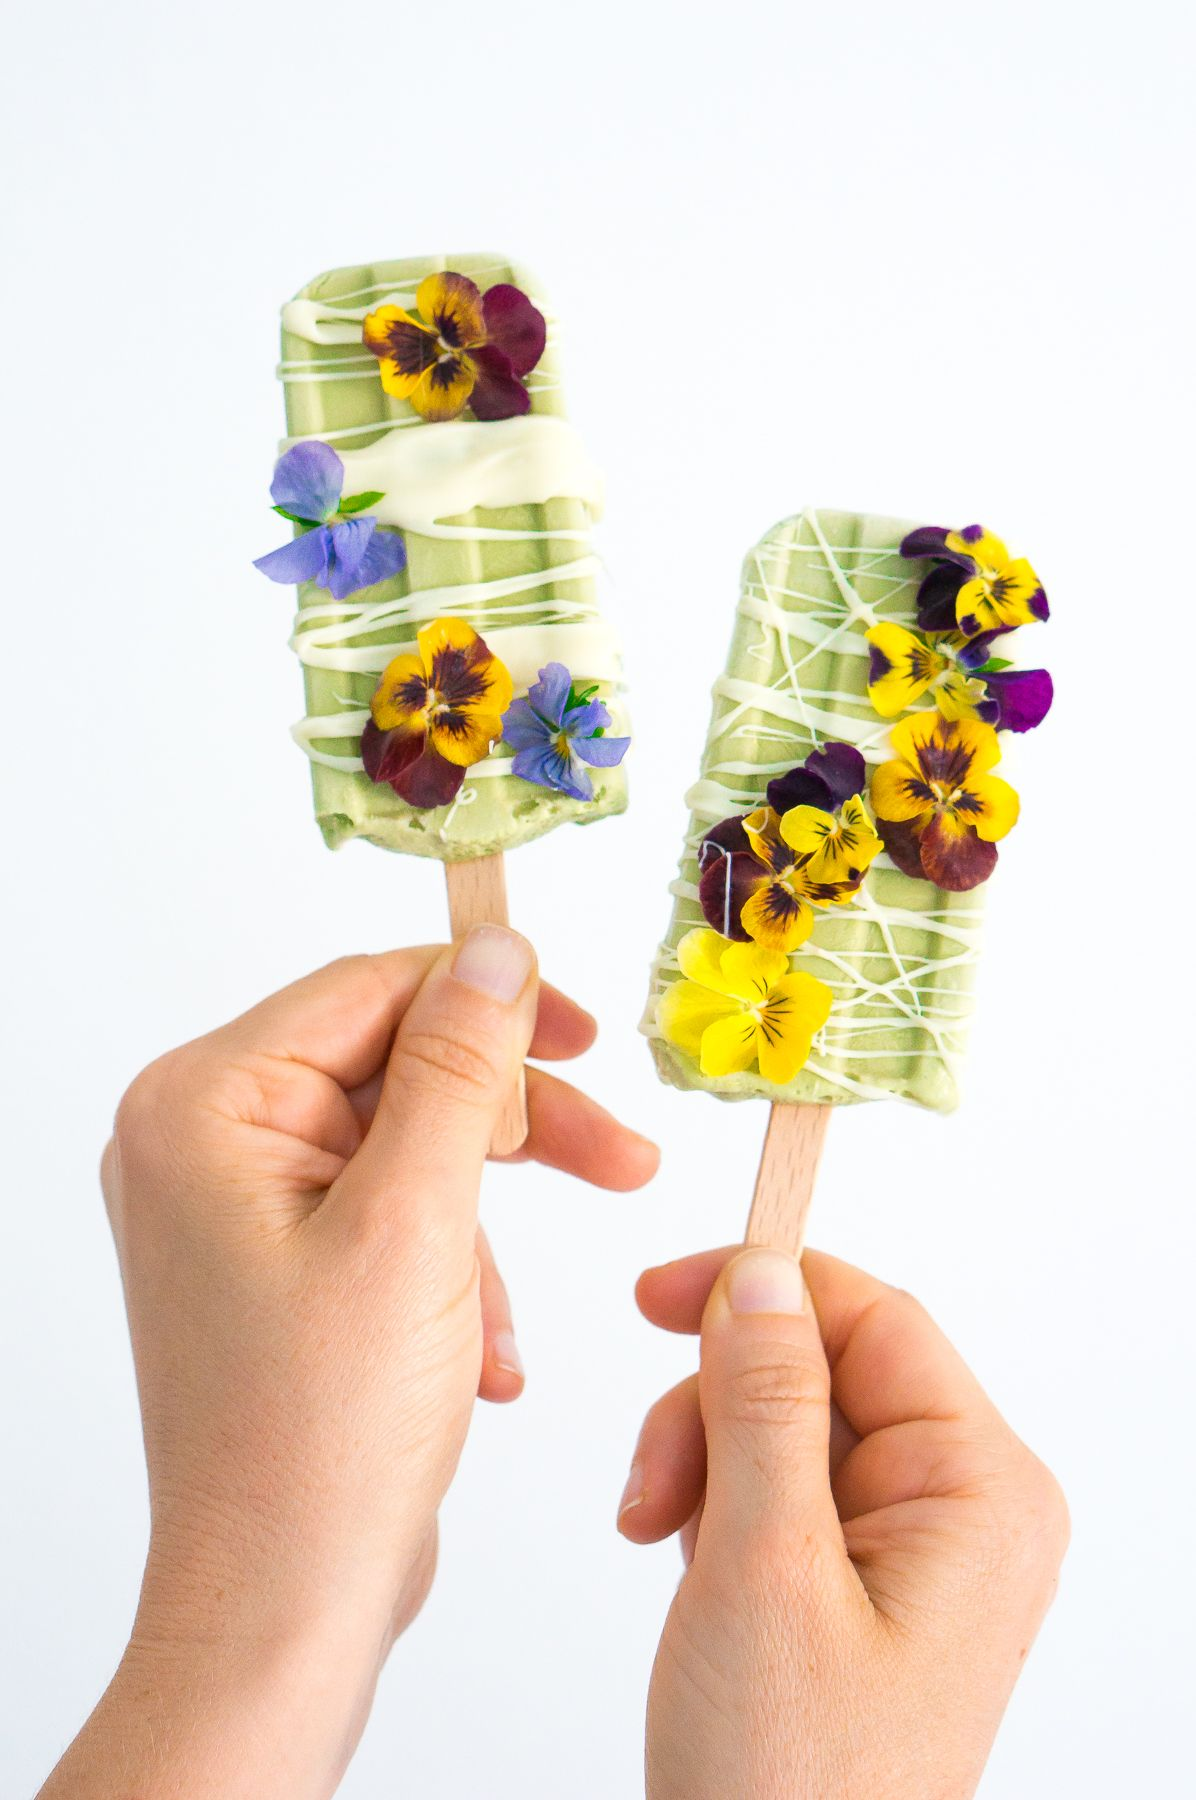 White Chocolate Basil Popsicles With Edible Flowers Vegan Gluten